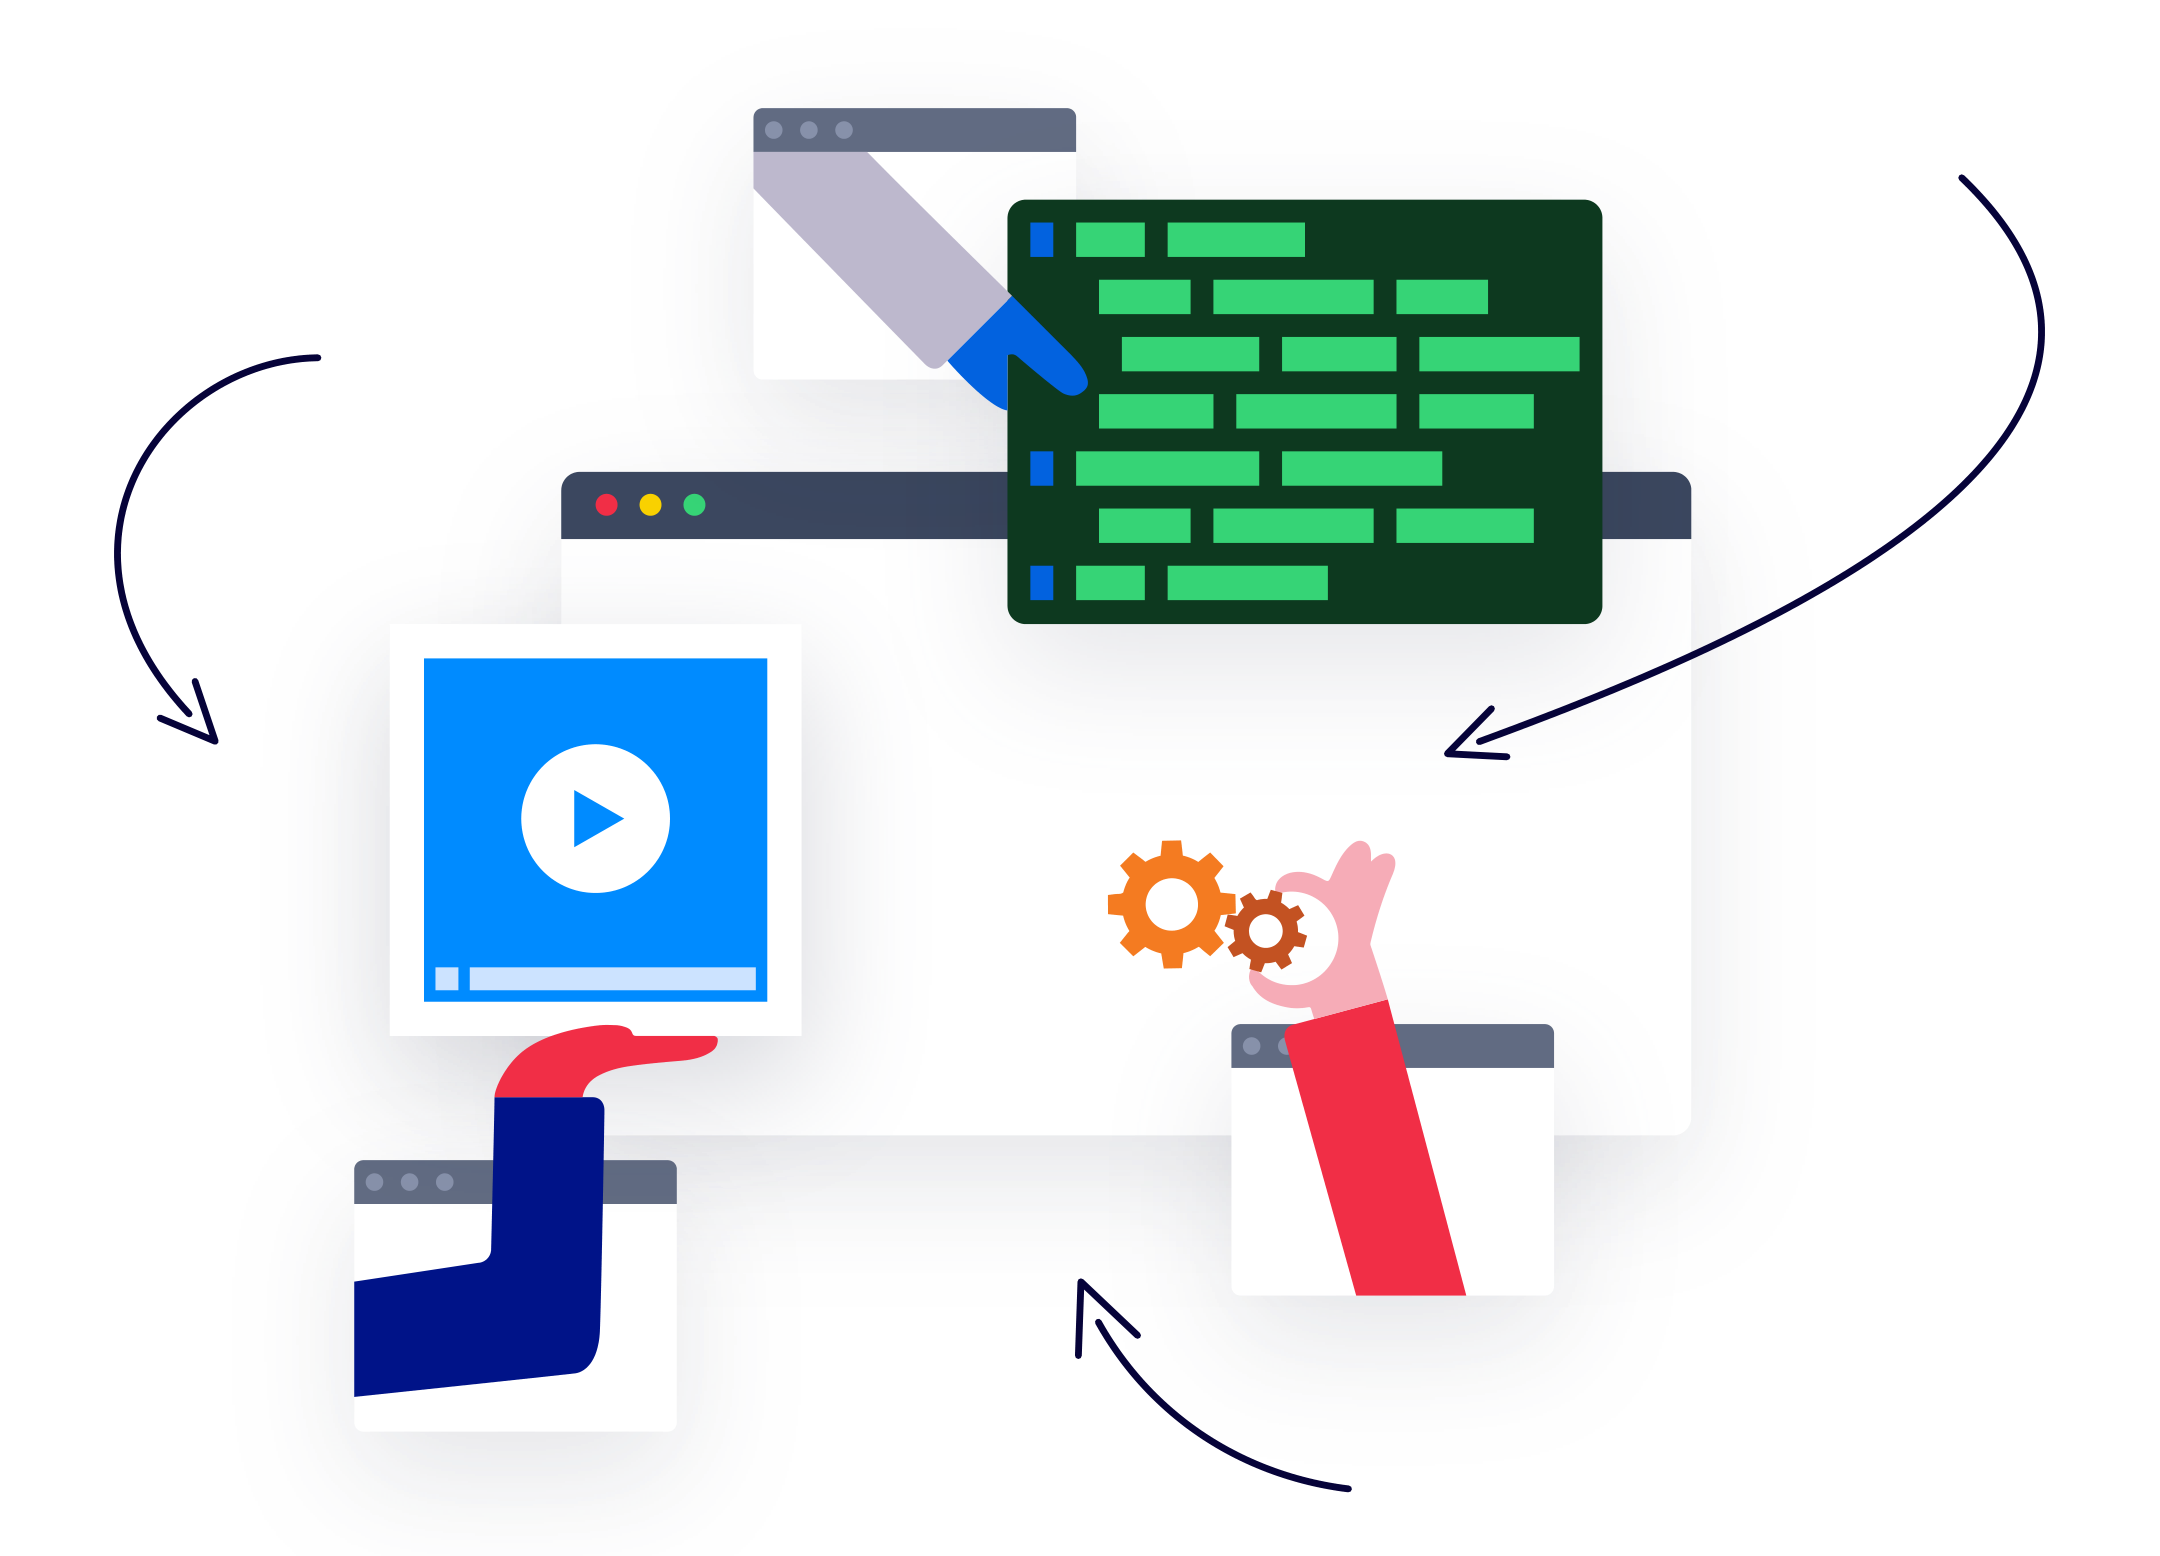 Mulitple browser window illustrations with arrows pointing to code video and gears